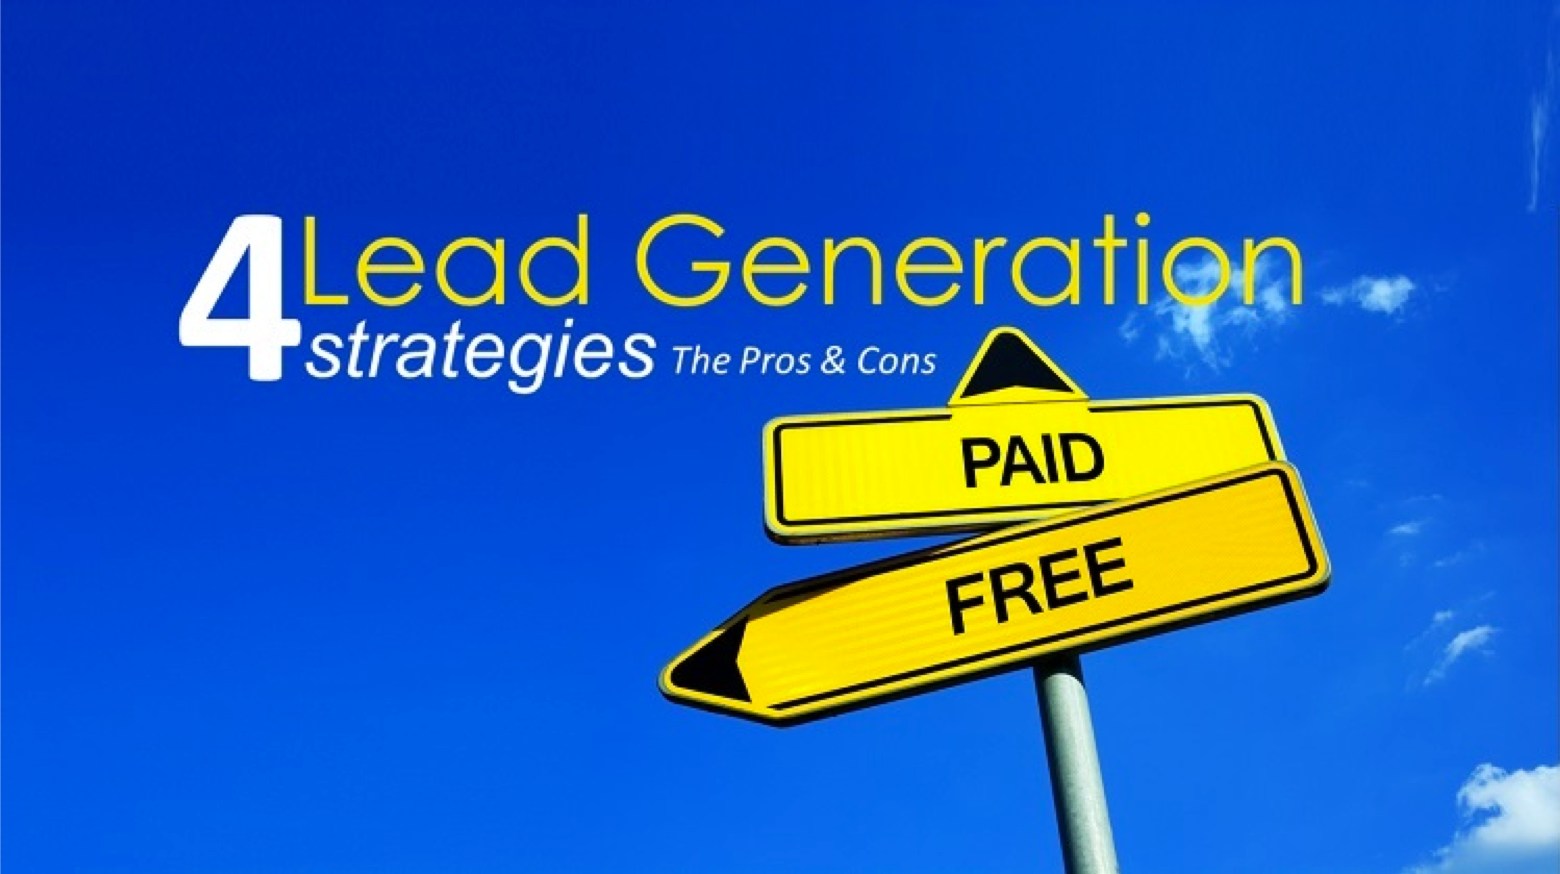 4 Lead Generation Strategies You Might Already be doing